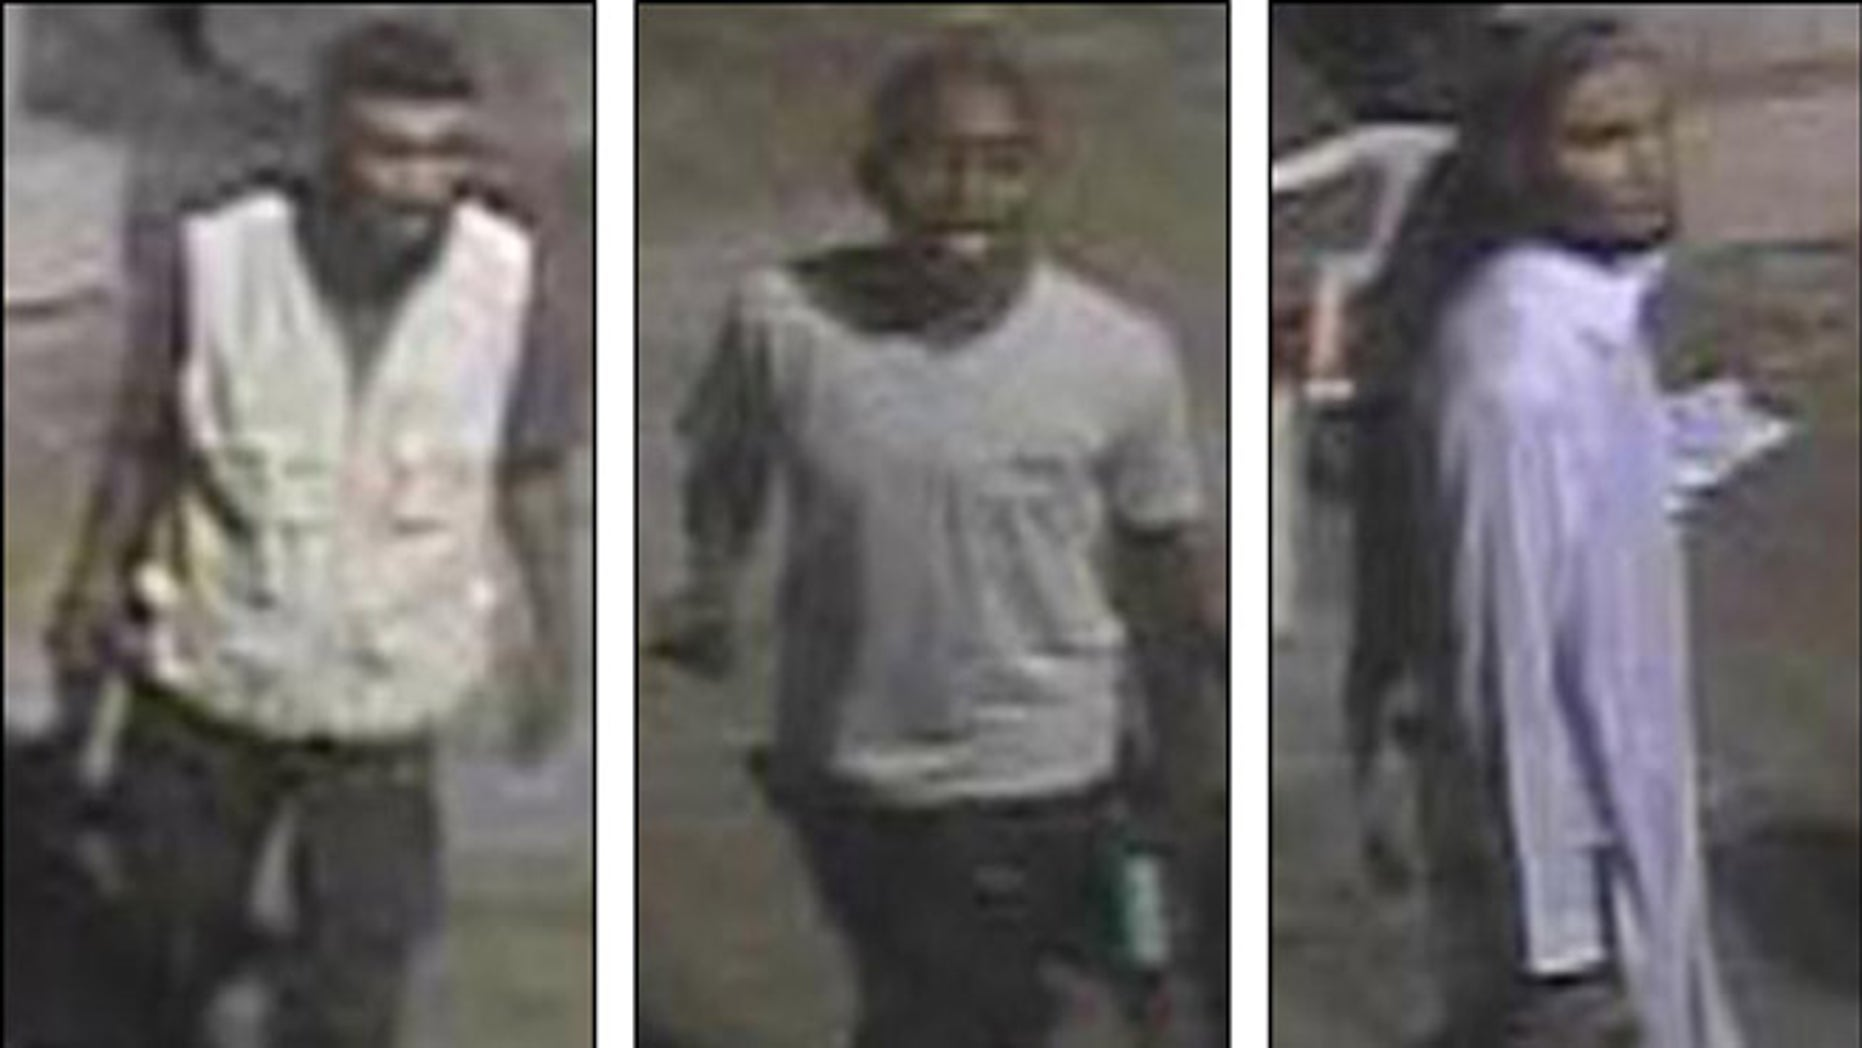 Shown here are images released by the FBI of people wanted for questioning in connection with the Benghazi attack.